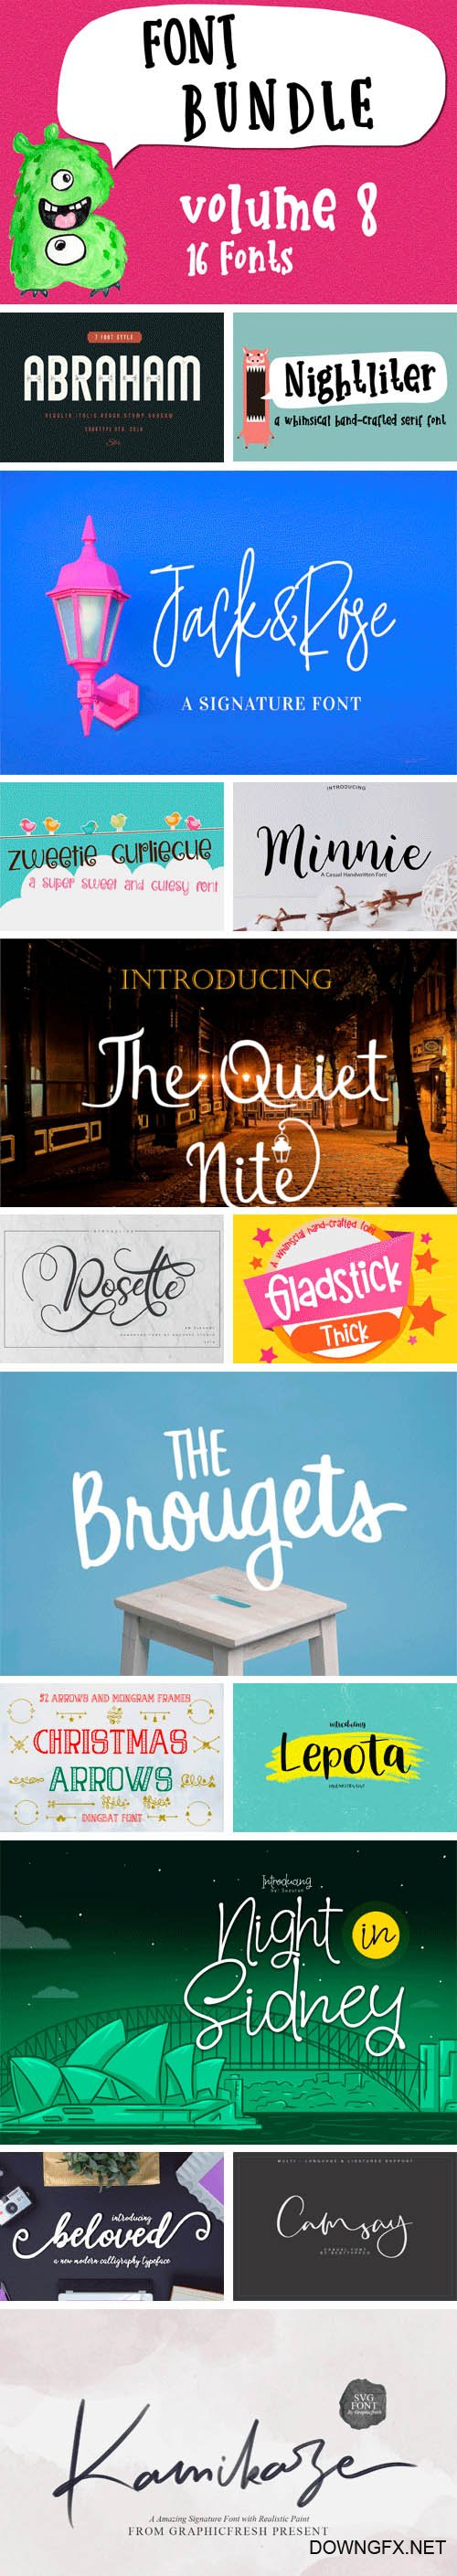 CF - Font Bundle Vol. 8